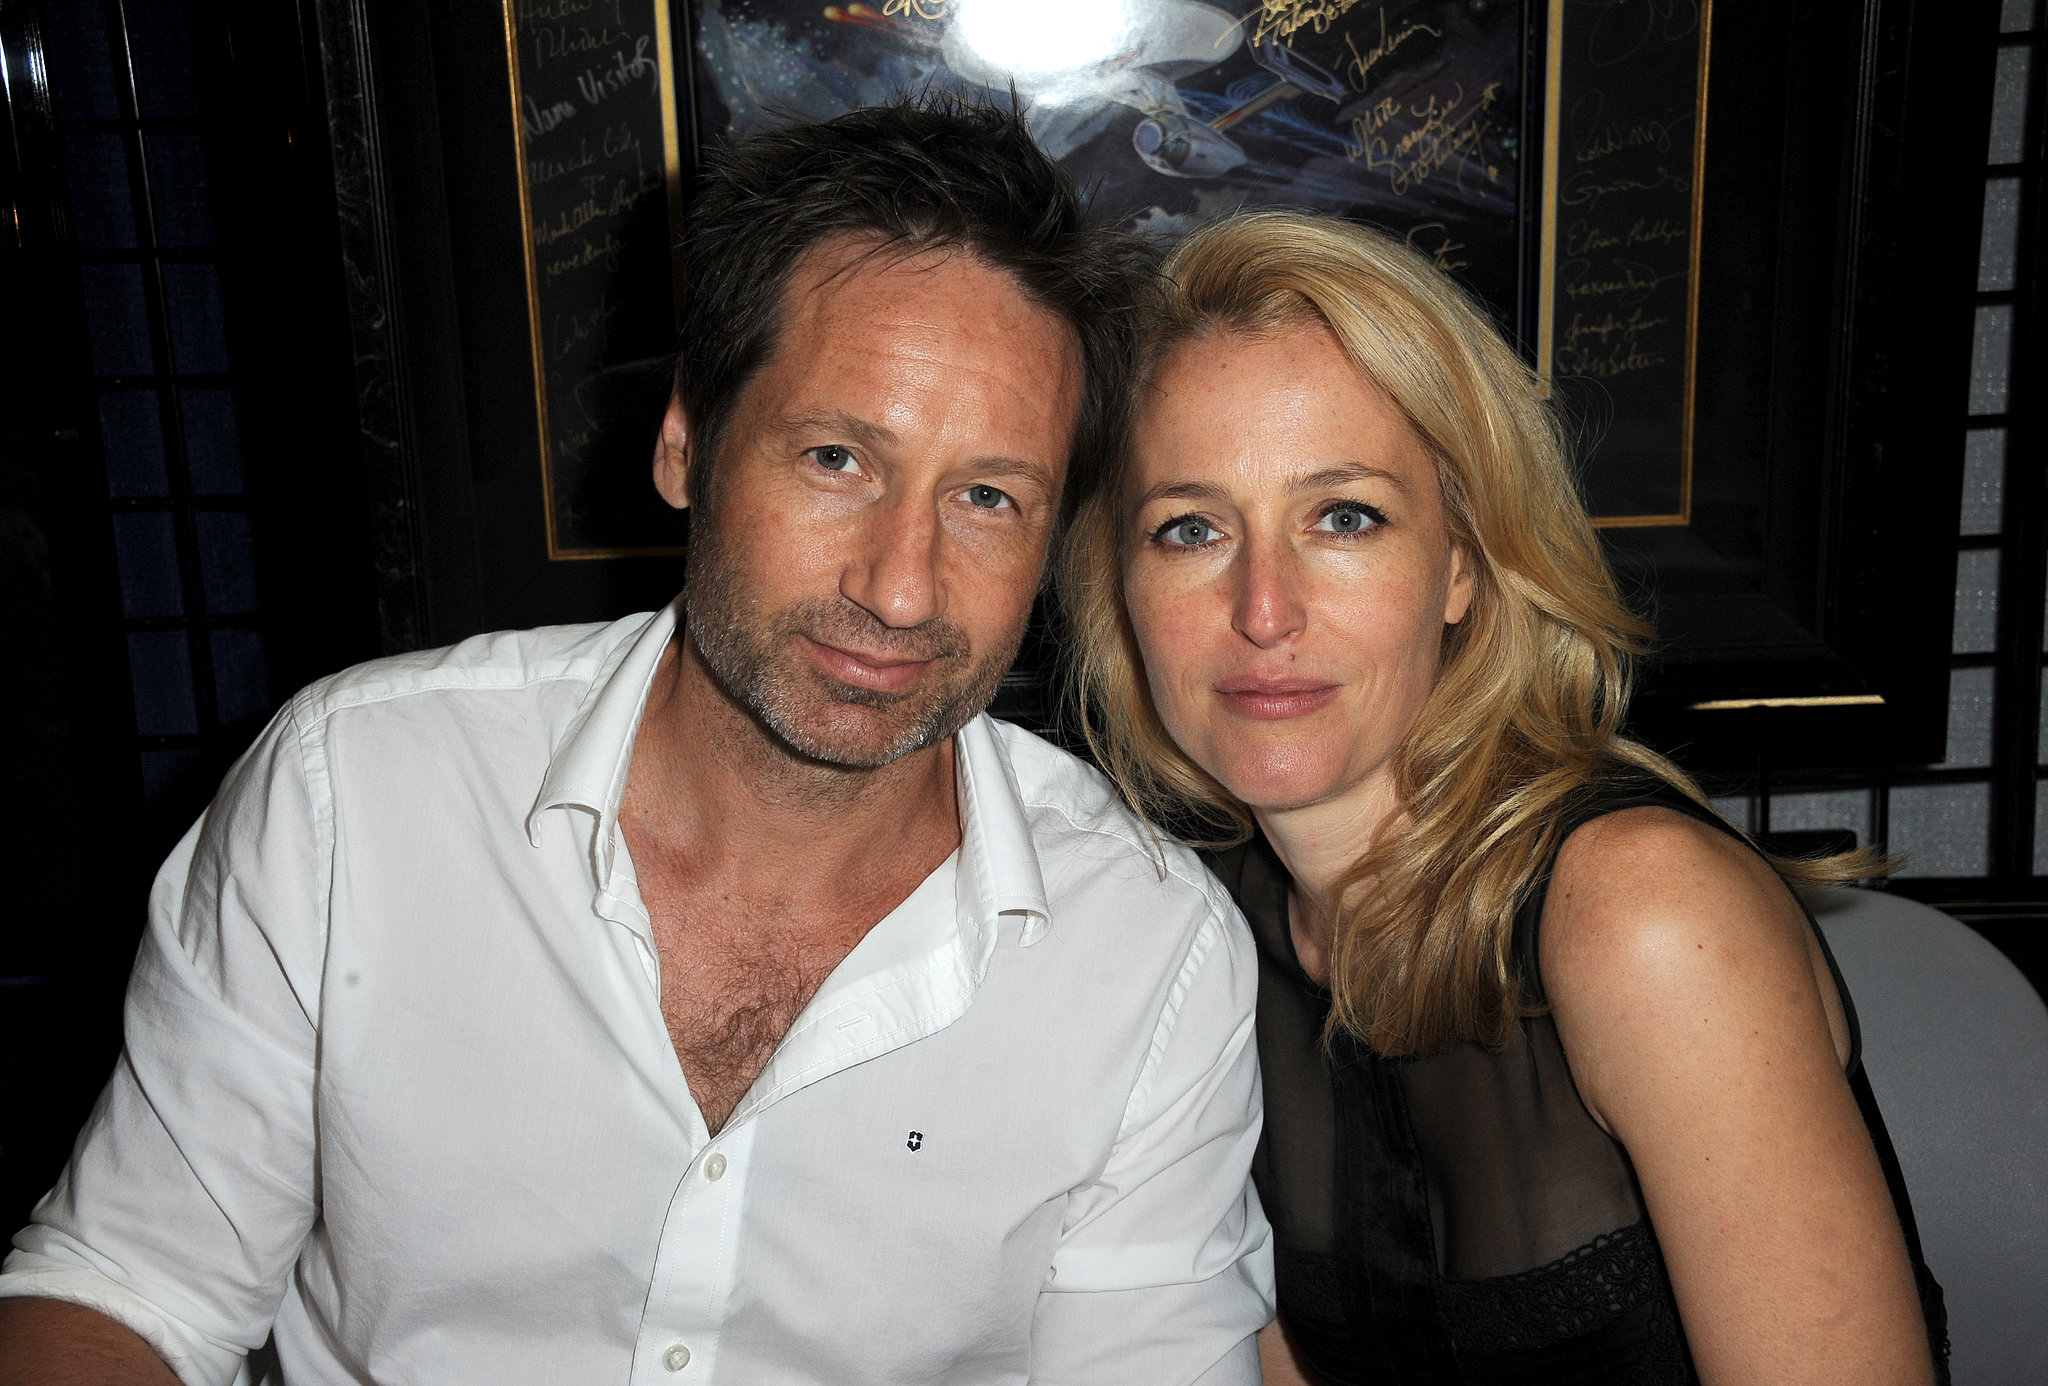 X-Files reunion! David Duchovny and Gillian Anderson still look great.